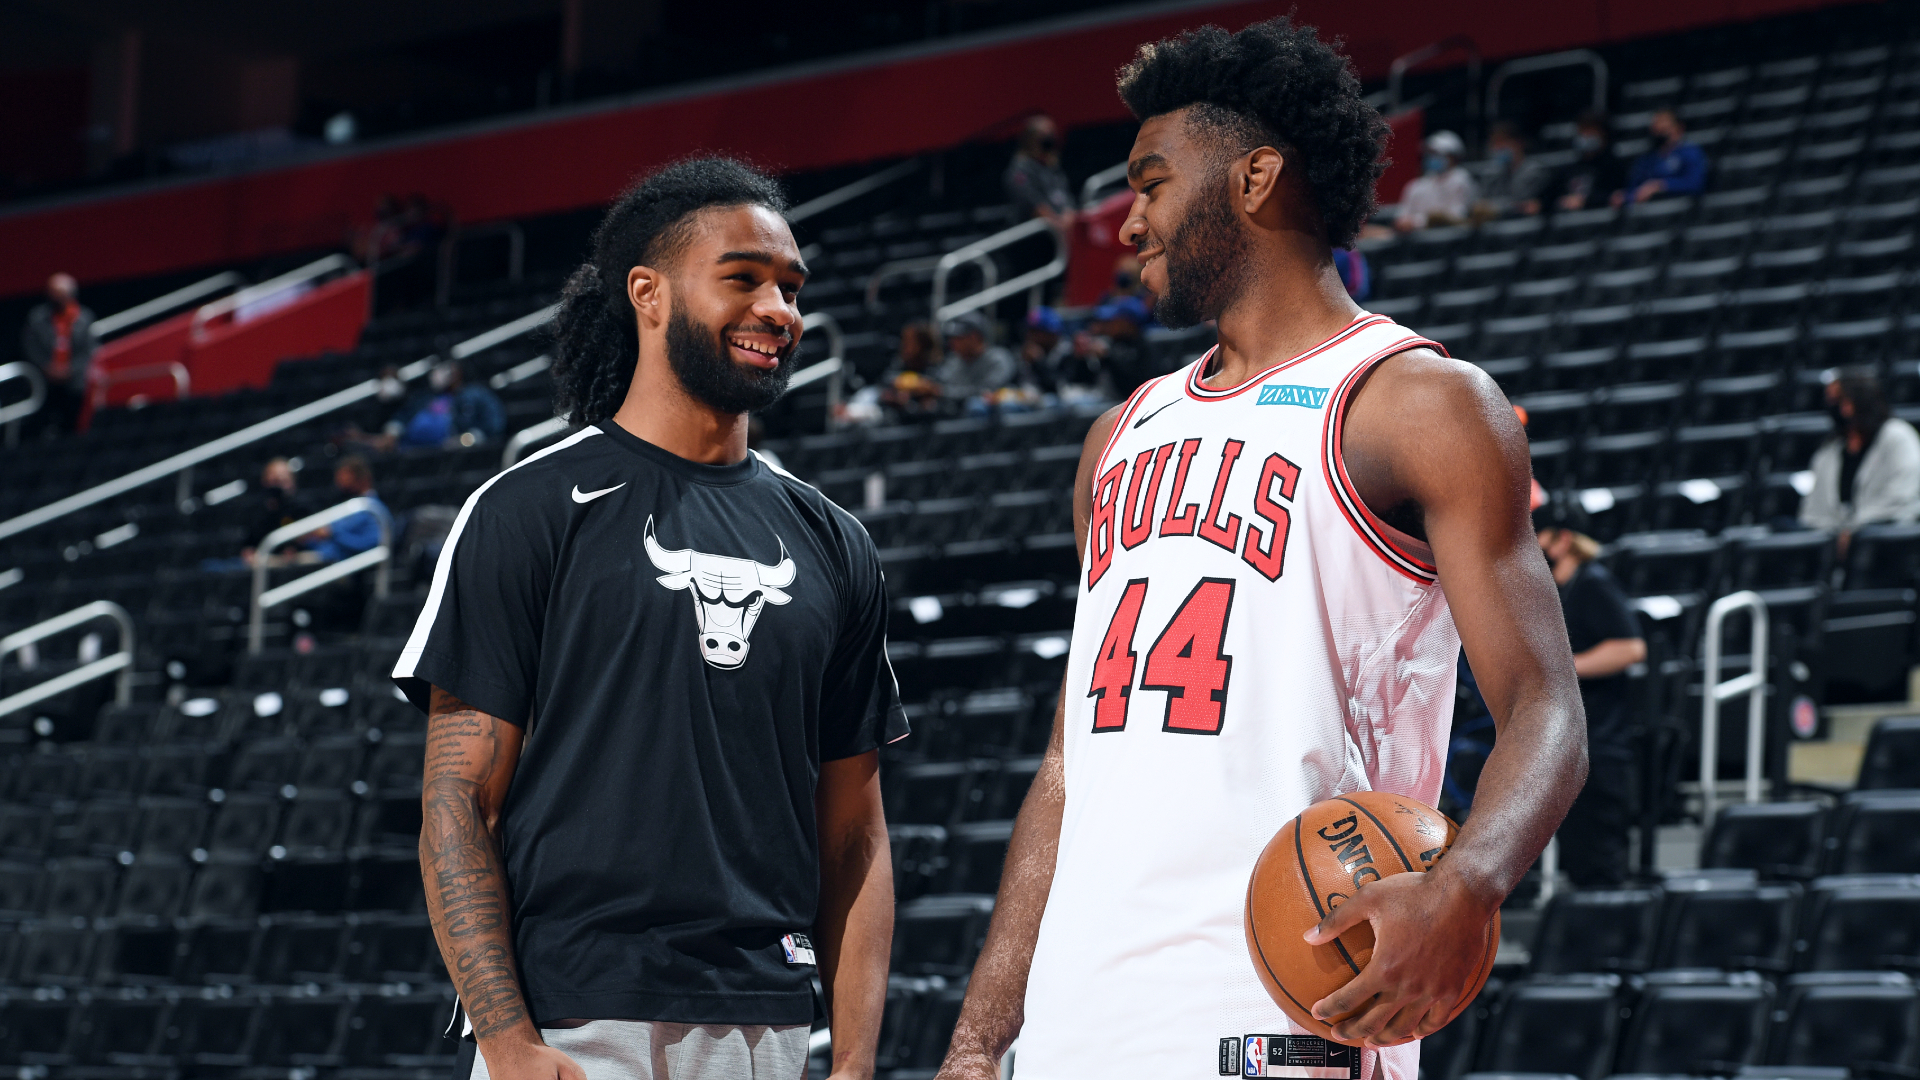 Bulls exercise contract options on Coby White, Patrick Williams